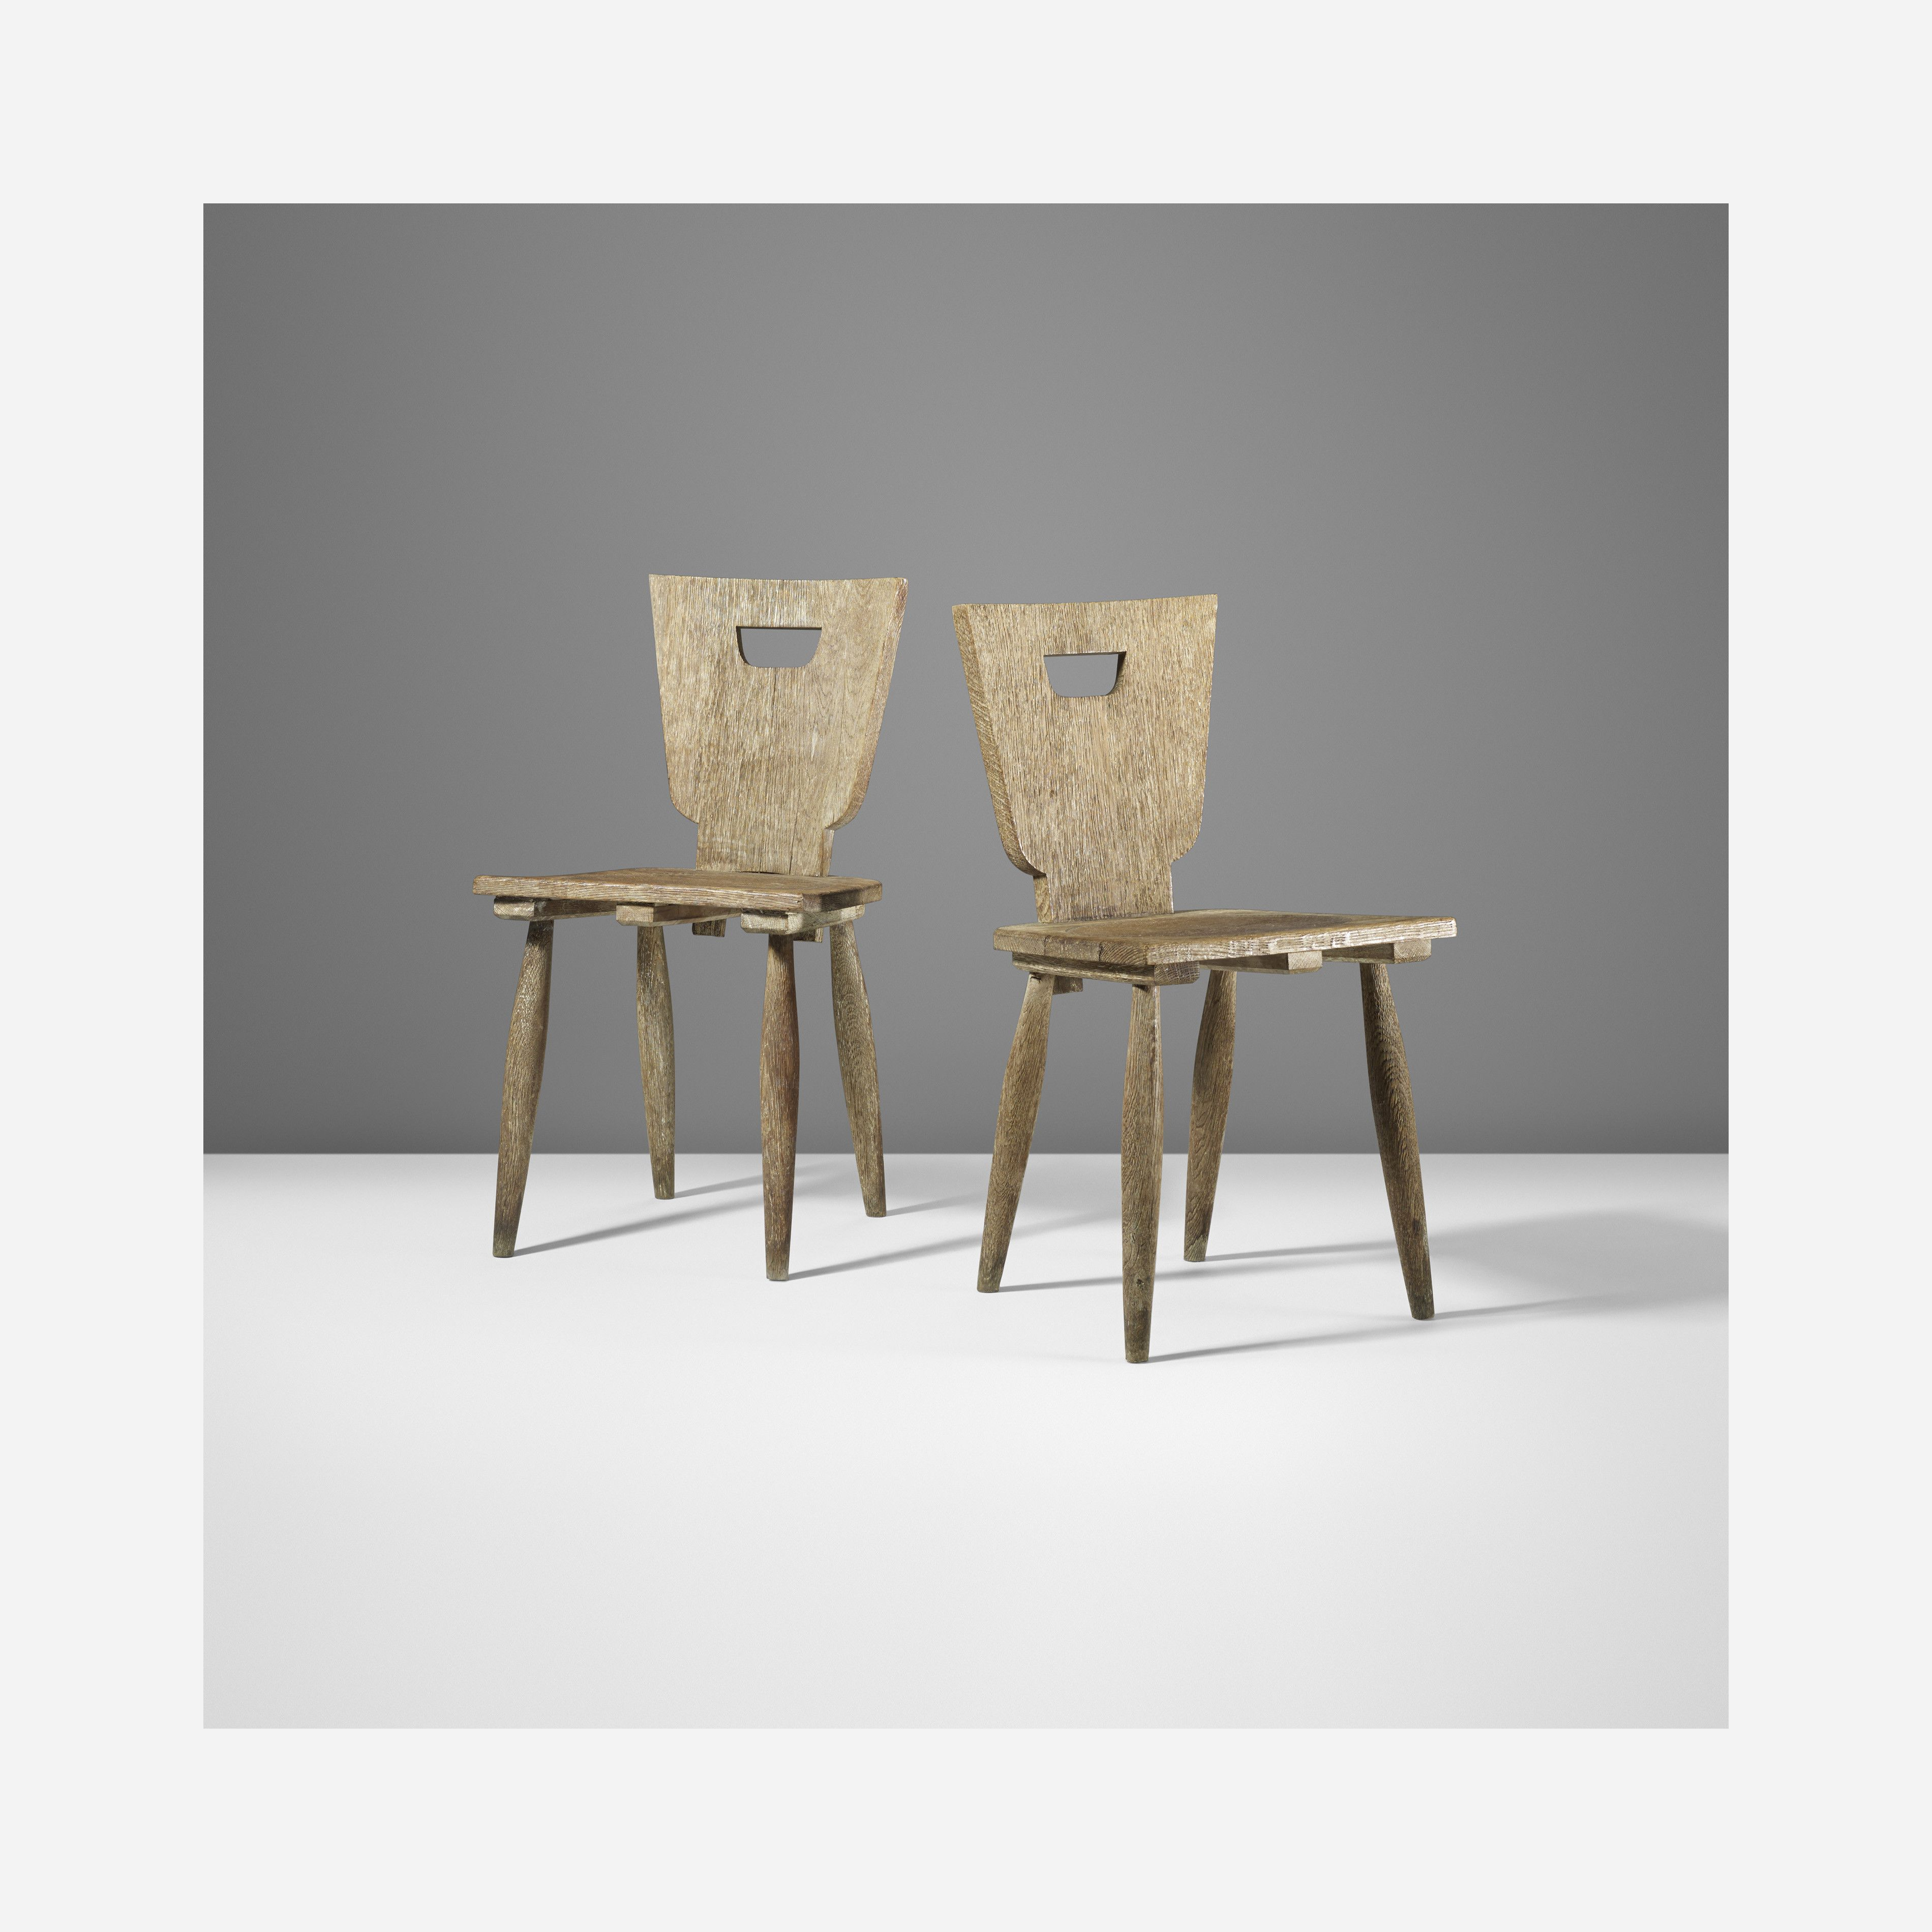 143 Jean Royere Chaises Rustiques Tree Furniture Vintage